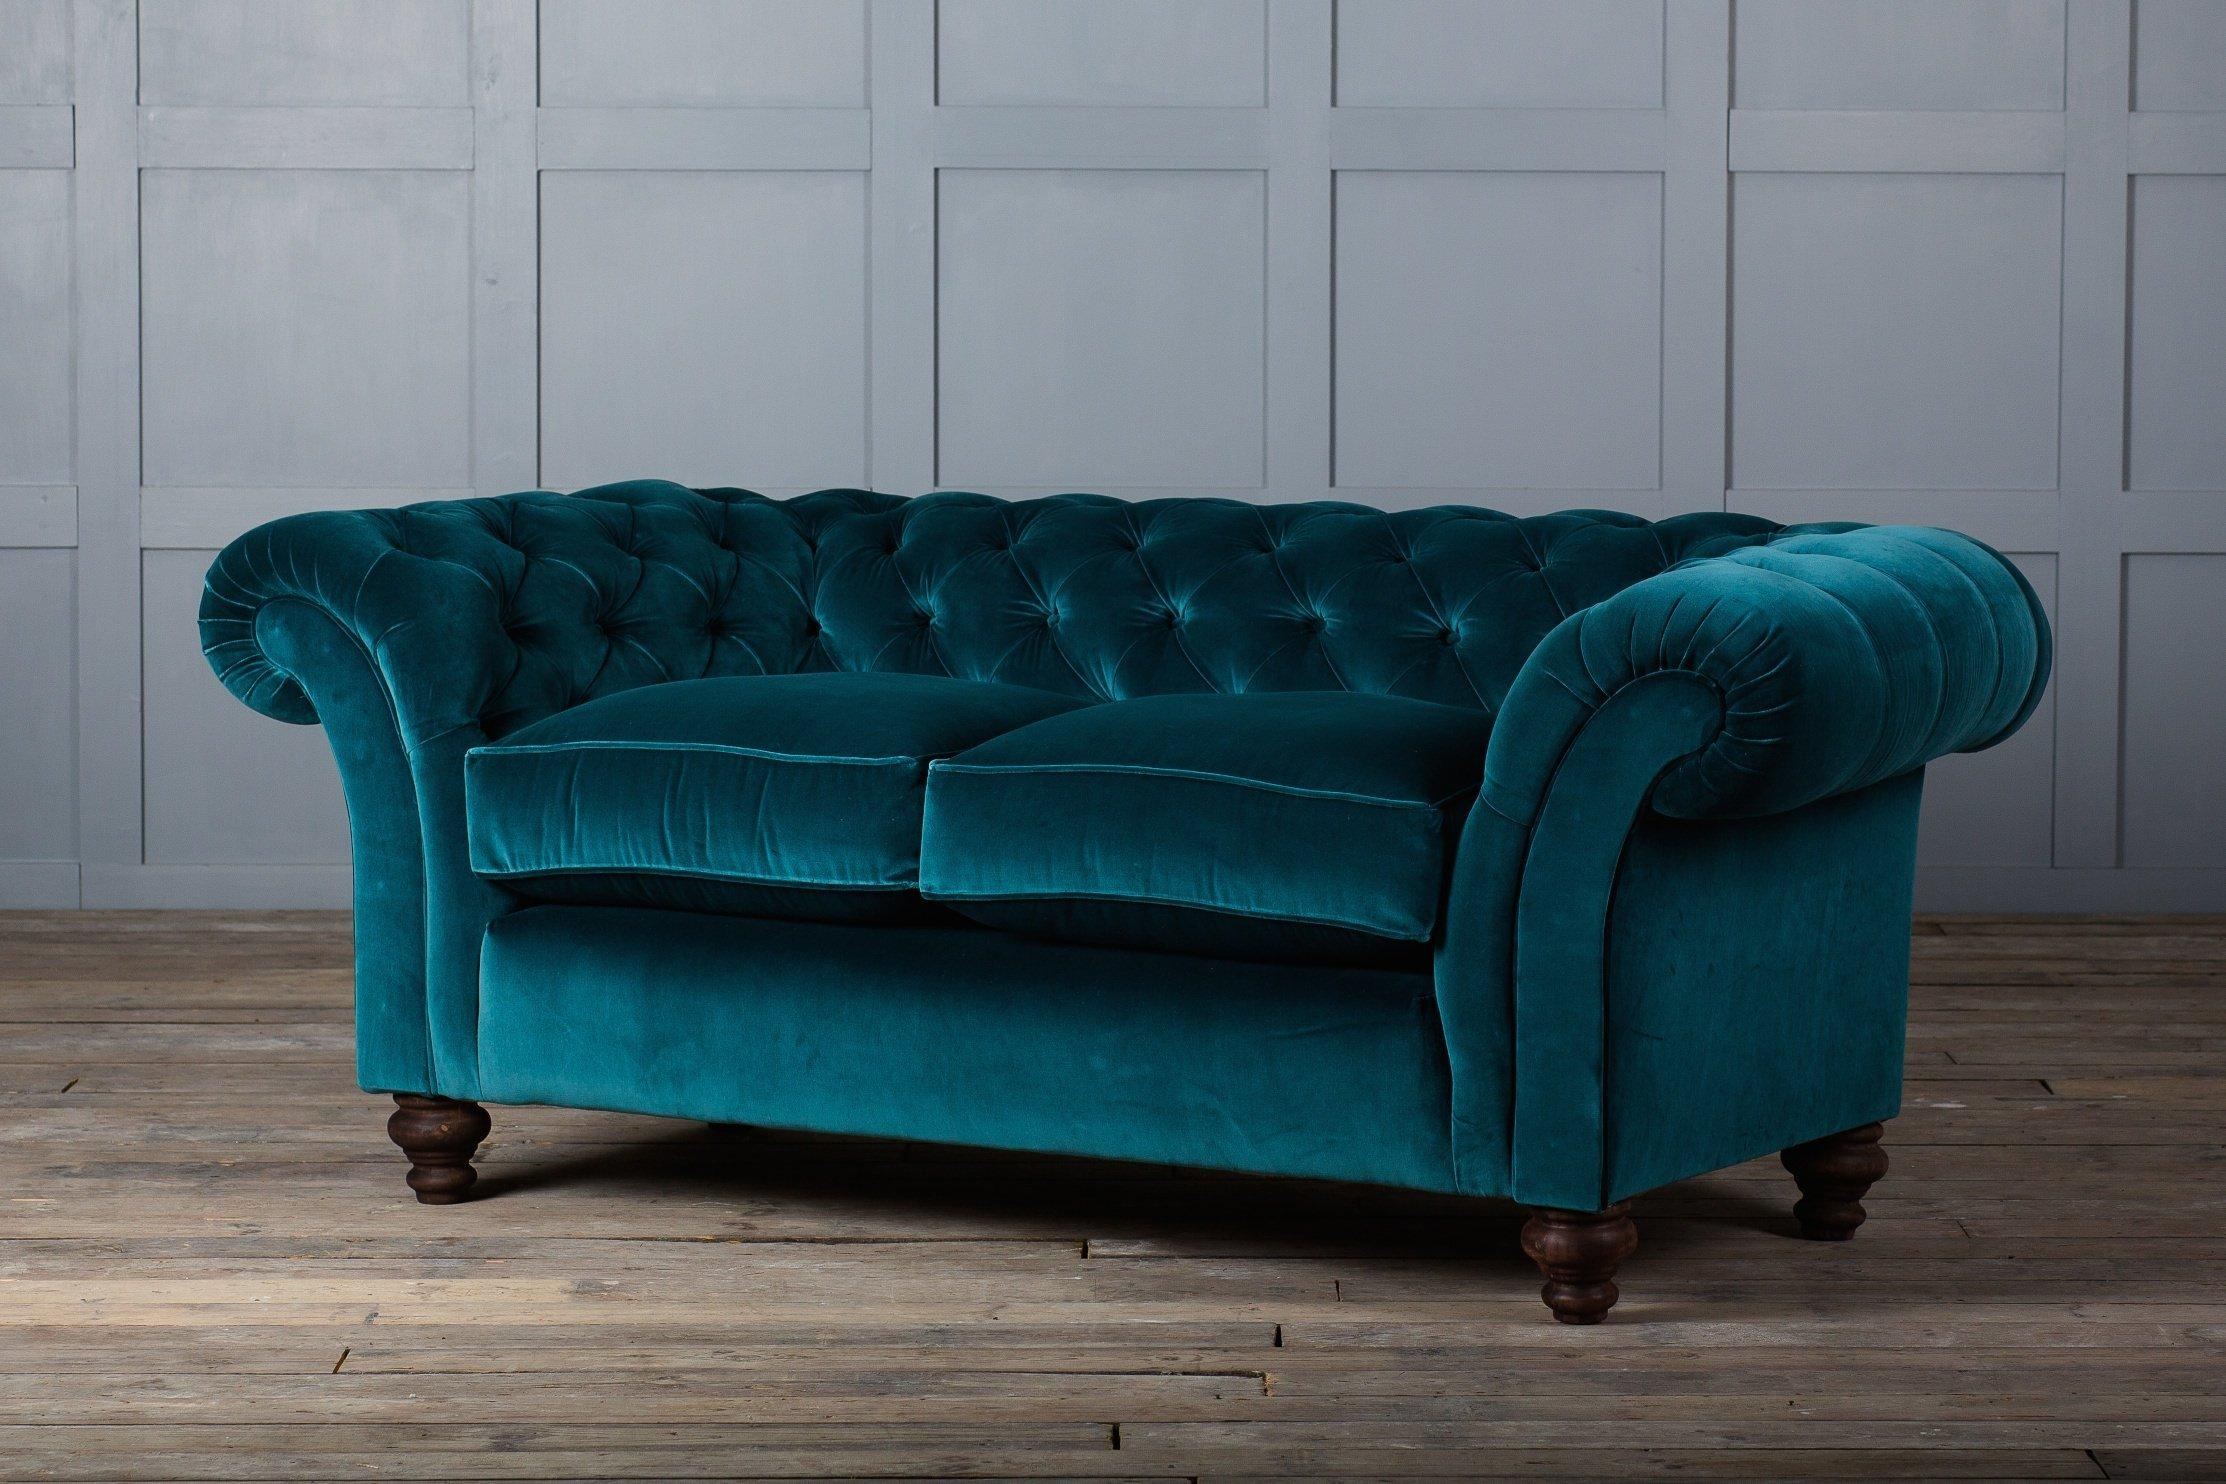 Velvet Tufted Sofa Canada | Tehranmix Decoration Intended For Blue Velvet Tufted Sofas (Image 19 of 20)